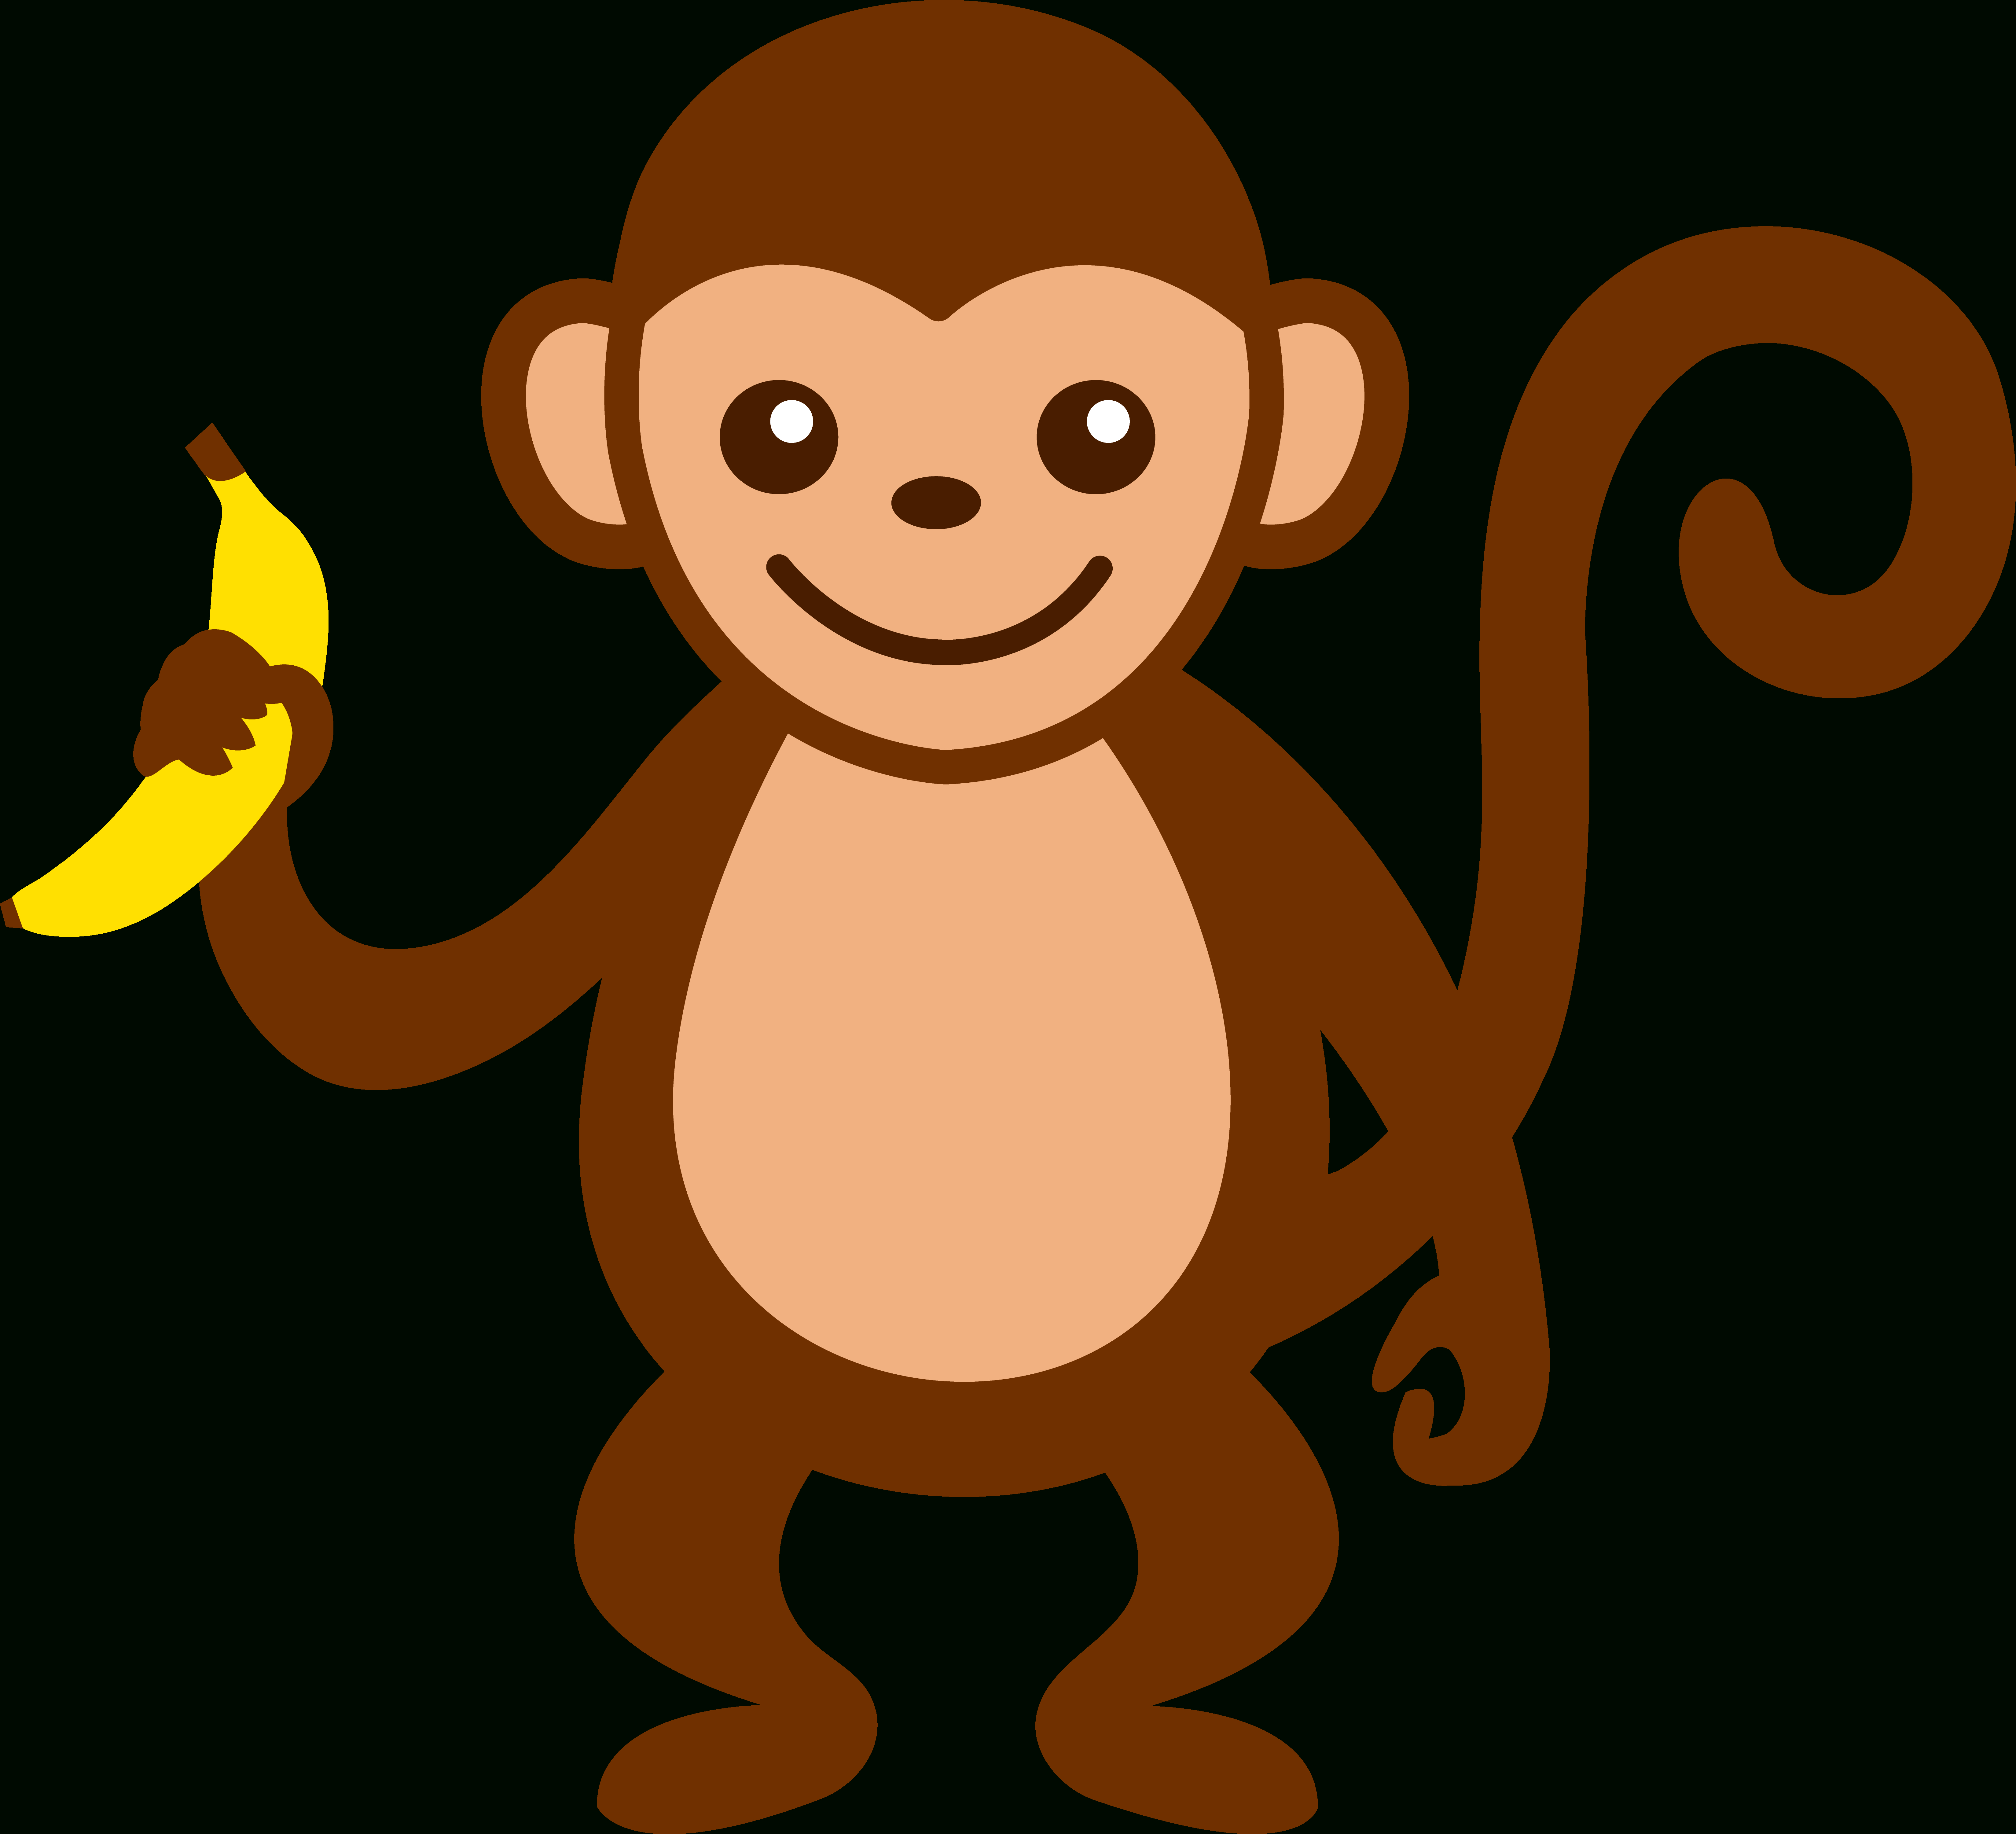 Free Free Monkey Pictures, Download Free Clip Art, Free Clip Art On - Free Printable Sock Monkey Clip Art